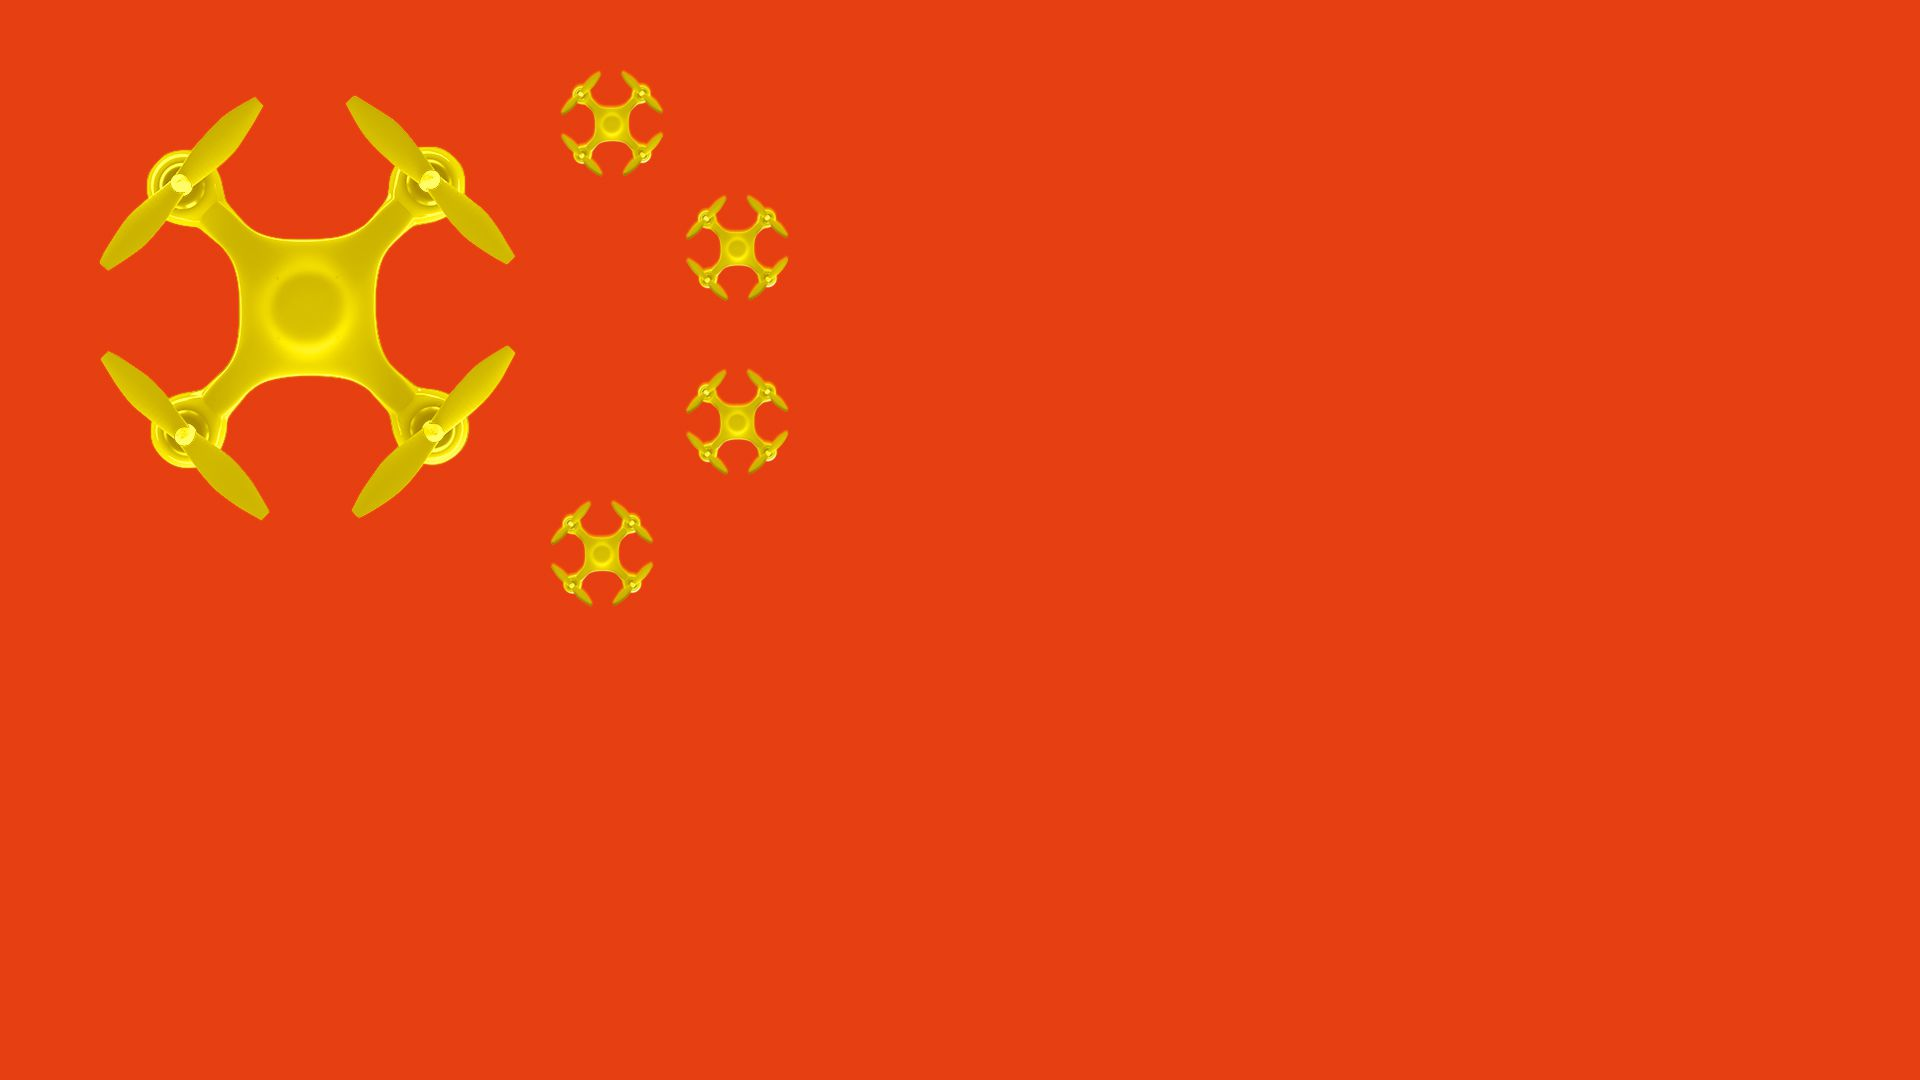 Illustration of the Chinese flag with drones in place of stars